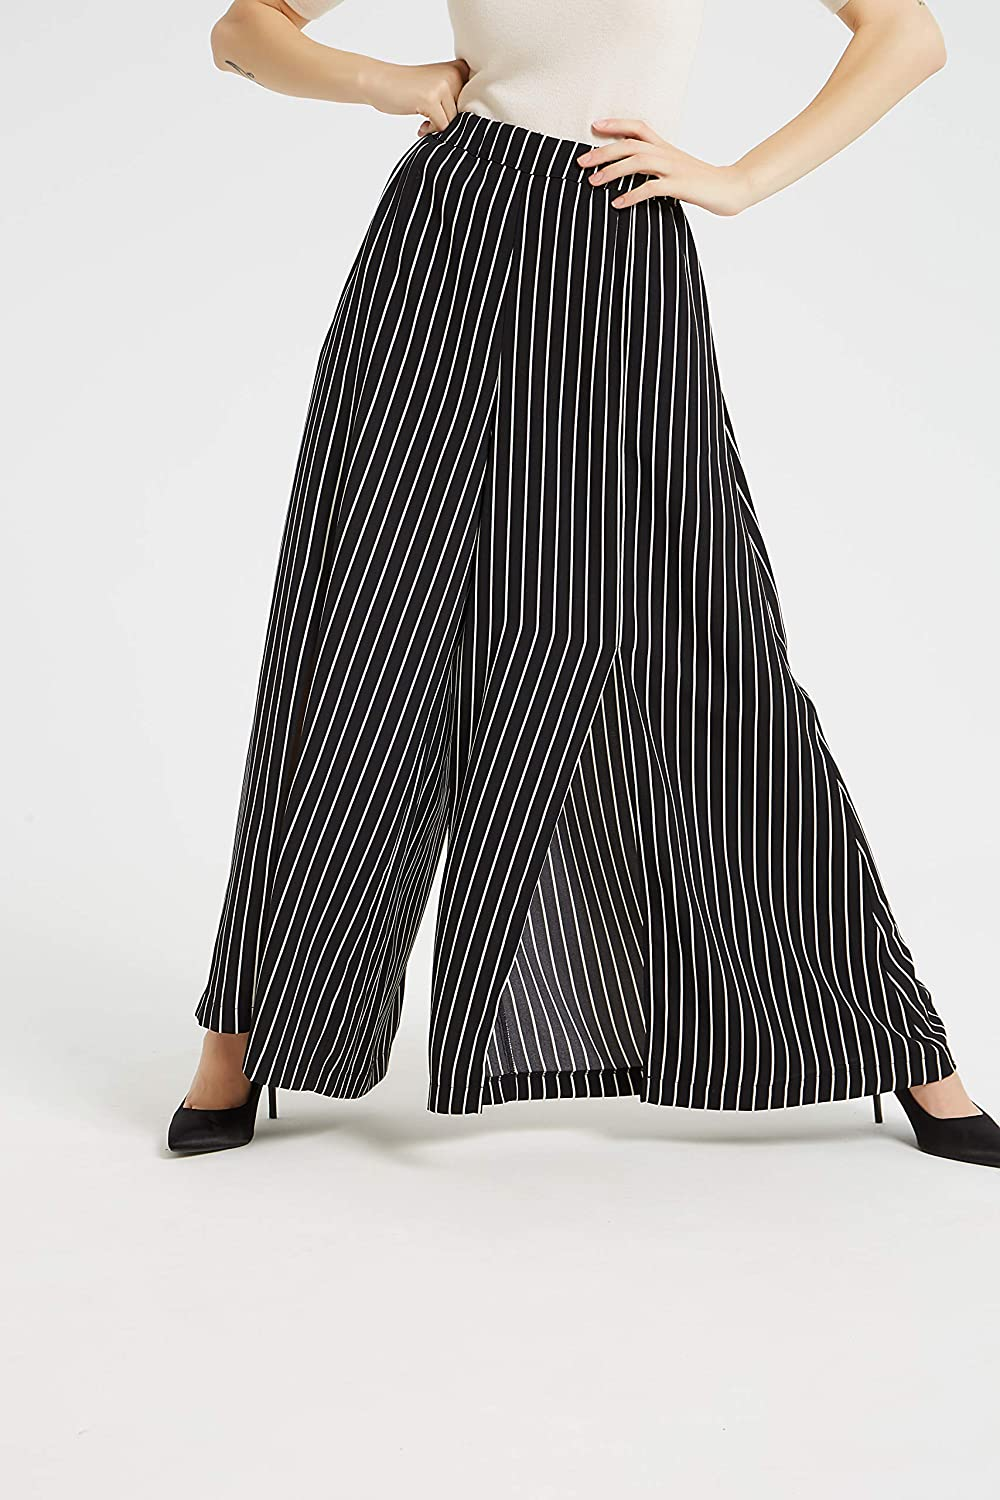 Tronjori Women's High Waist Elastic Casual Wide Leg Palazzo Pants Trousers with Front Slit Stripe Black